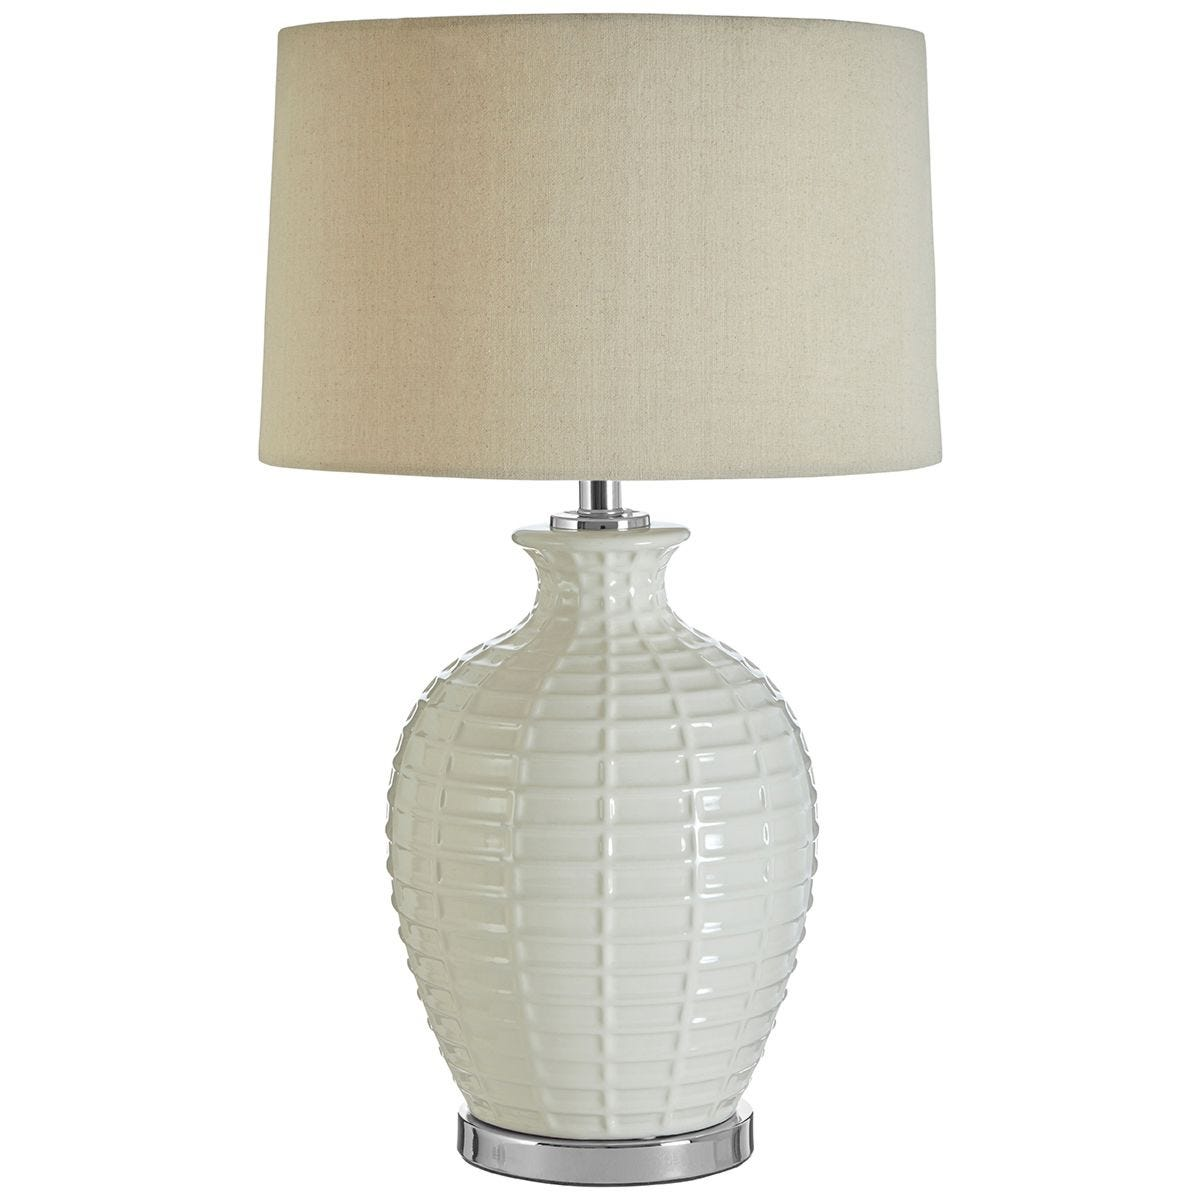 Premier Housewares Uzma Table Lamp with Natural Linen Shade